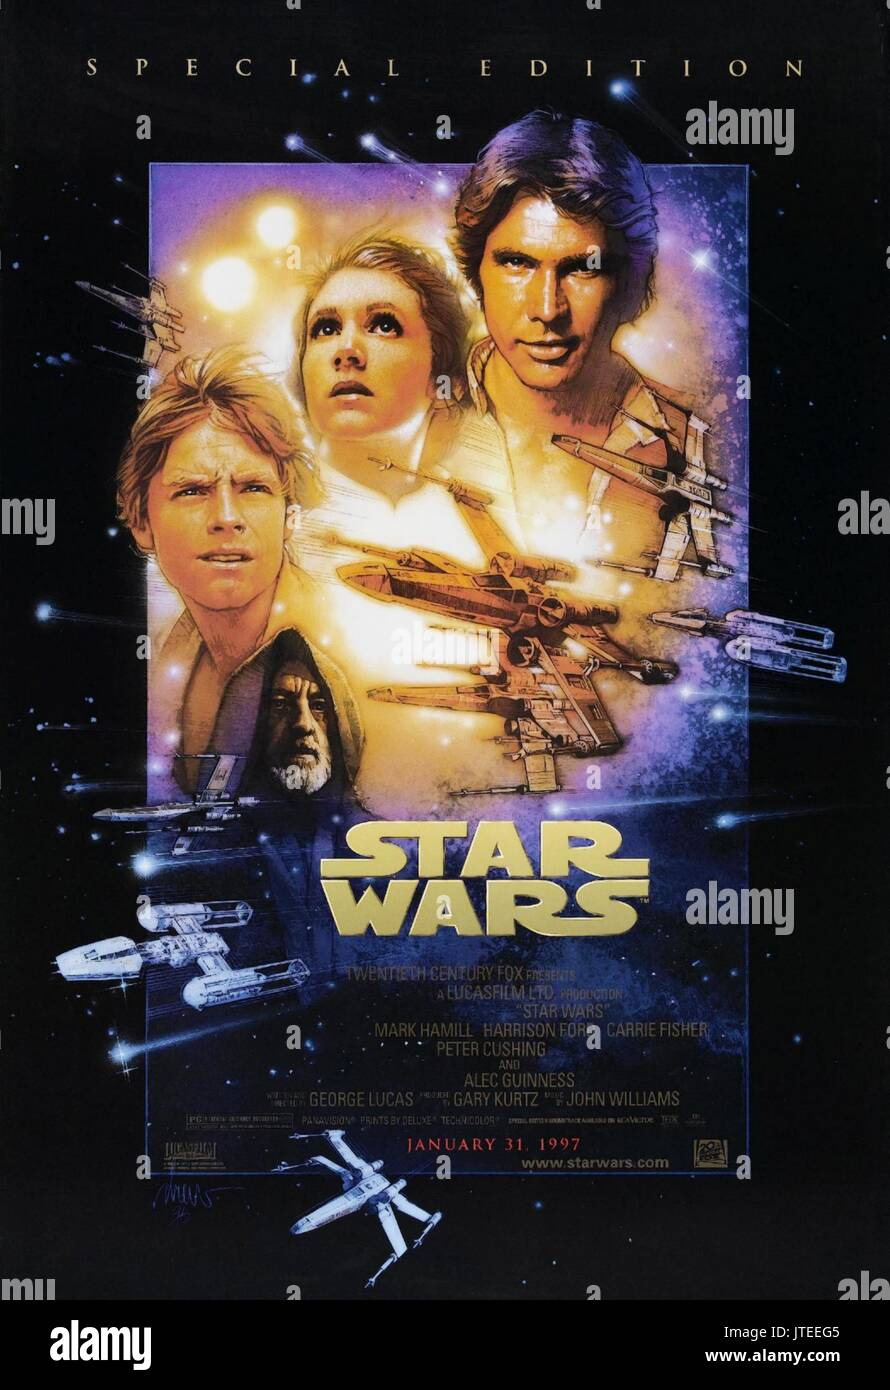 Movie Poster Star Wars Star Wars Episode Iv A New Hope 1977 Stock Photo Alamy